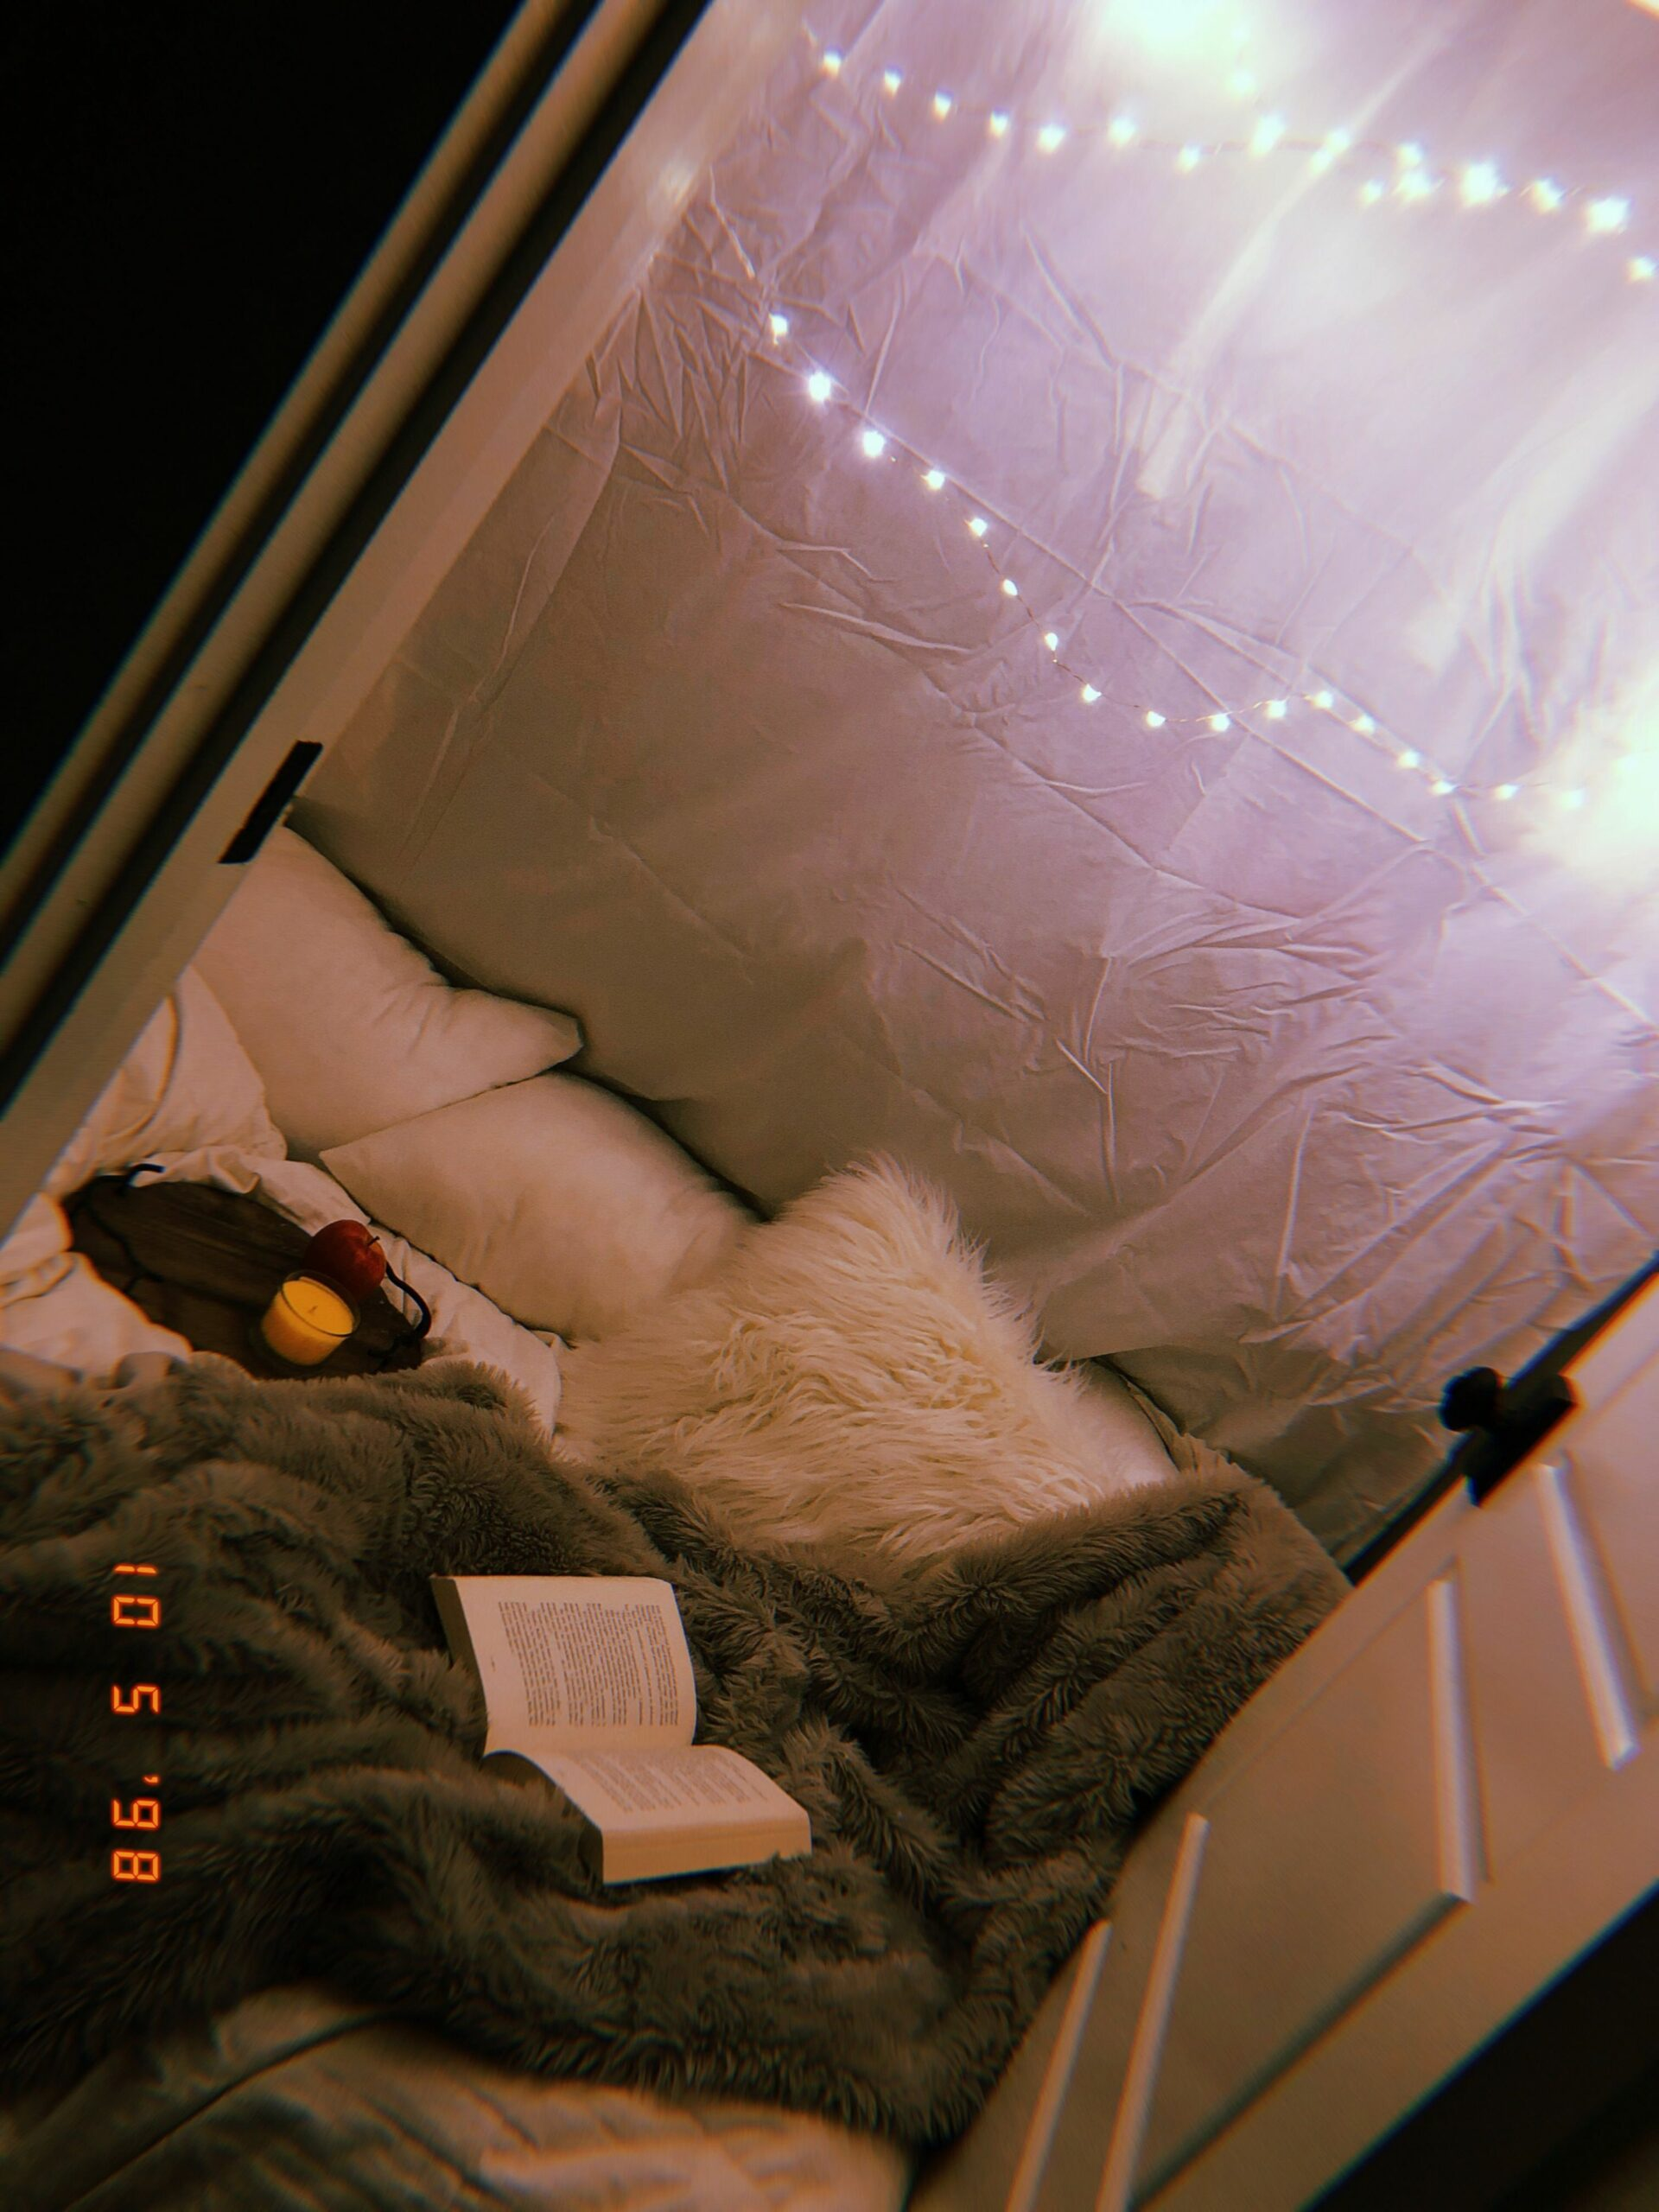 🍁Hangout🍁 (With images) | Hangout room, Sleepover room ..